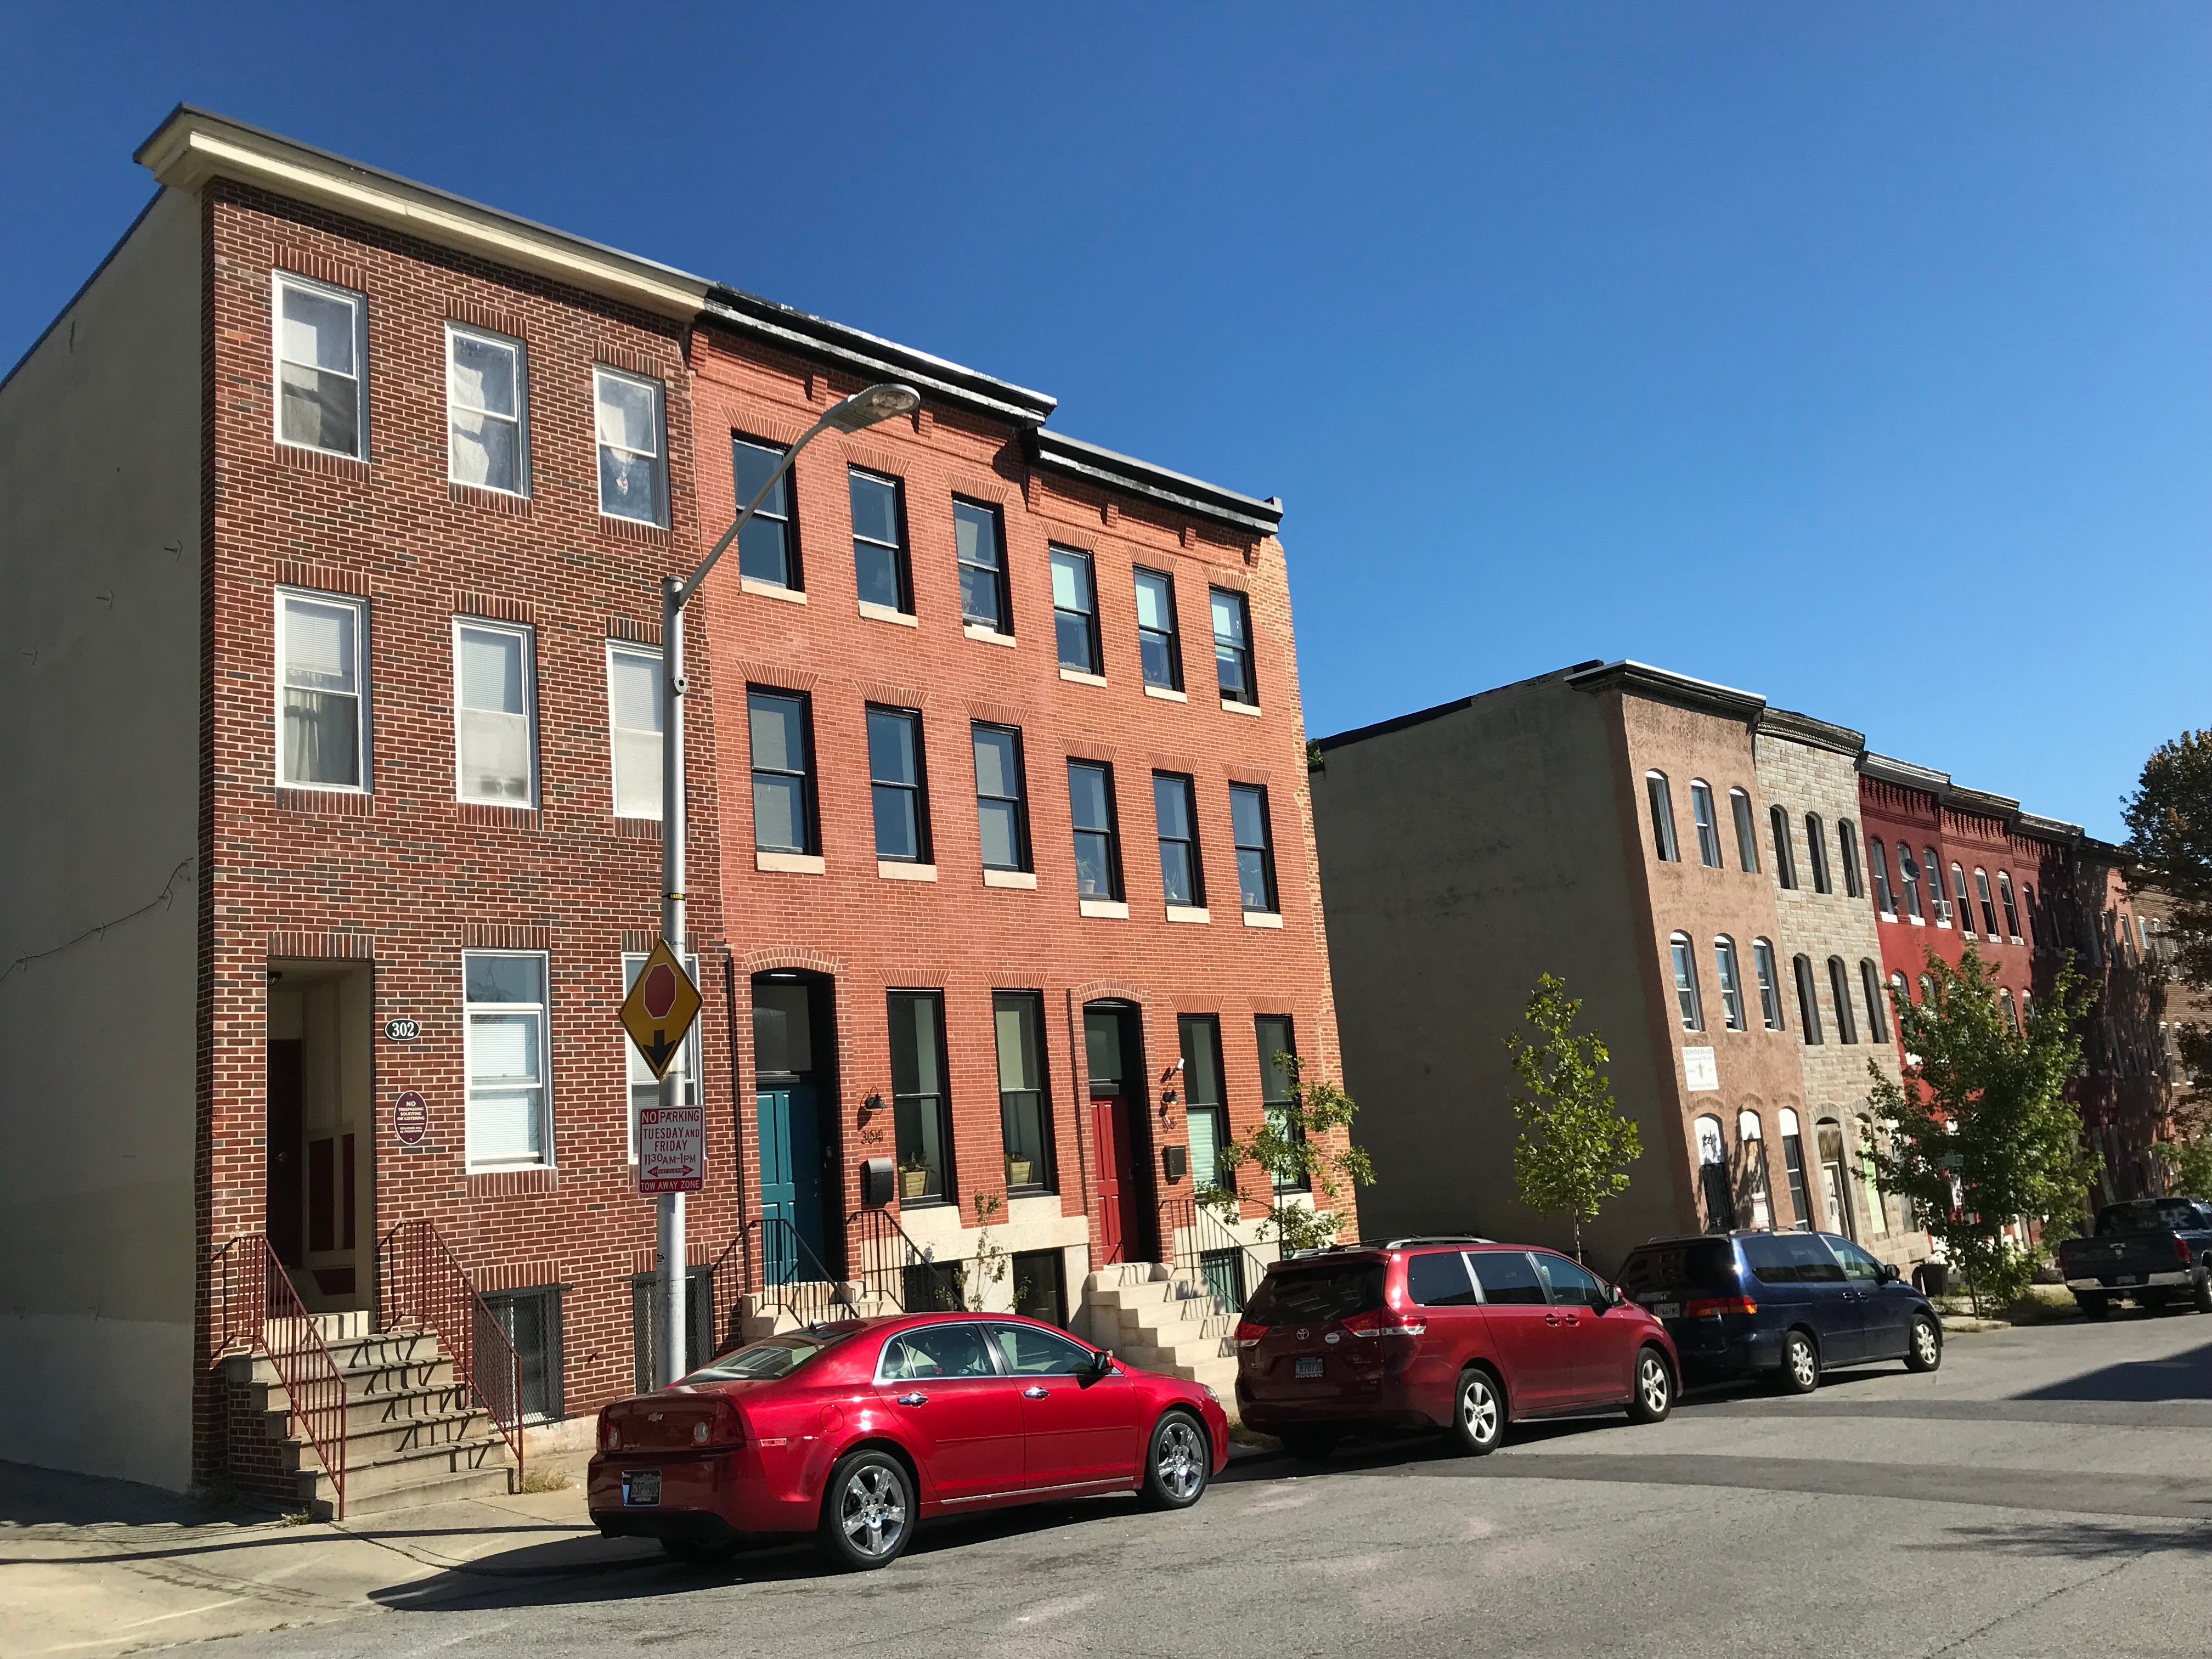 Rowhouses, 300 block of E. Lanvale Street (north side), Baltimore, MD 21202, Baltimore, Building, Car, Central Baltimore, HQ Photo